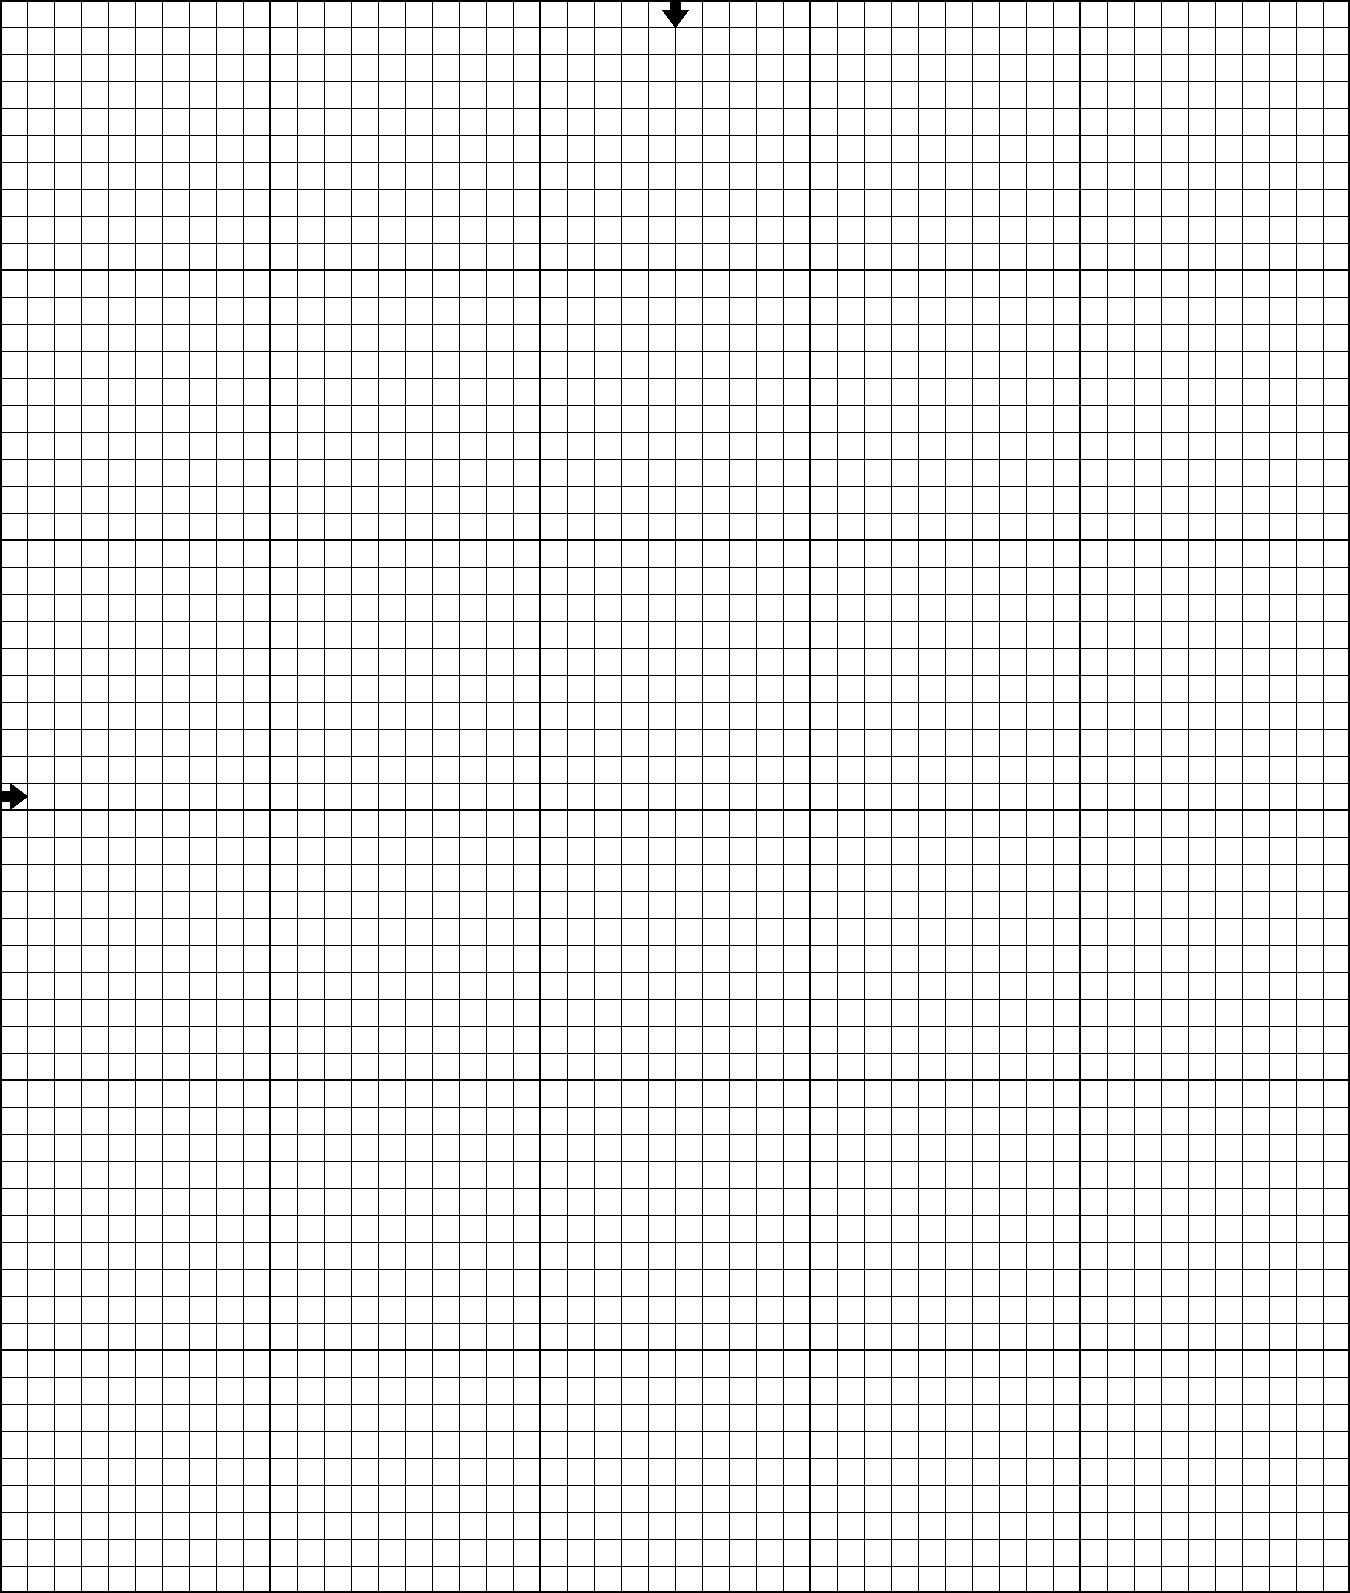 Stitch Up A Happy Birthday Surprise For Yourself Or As A In Blank Perler Bead Template